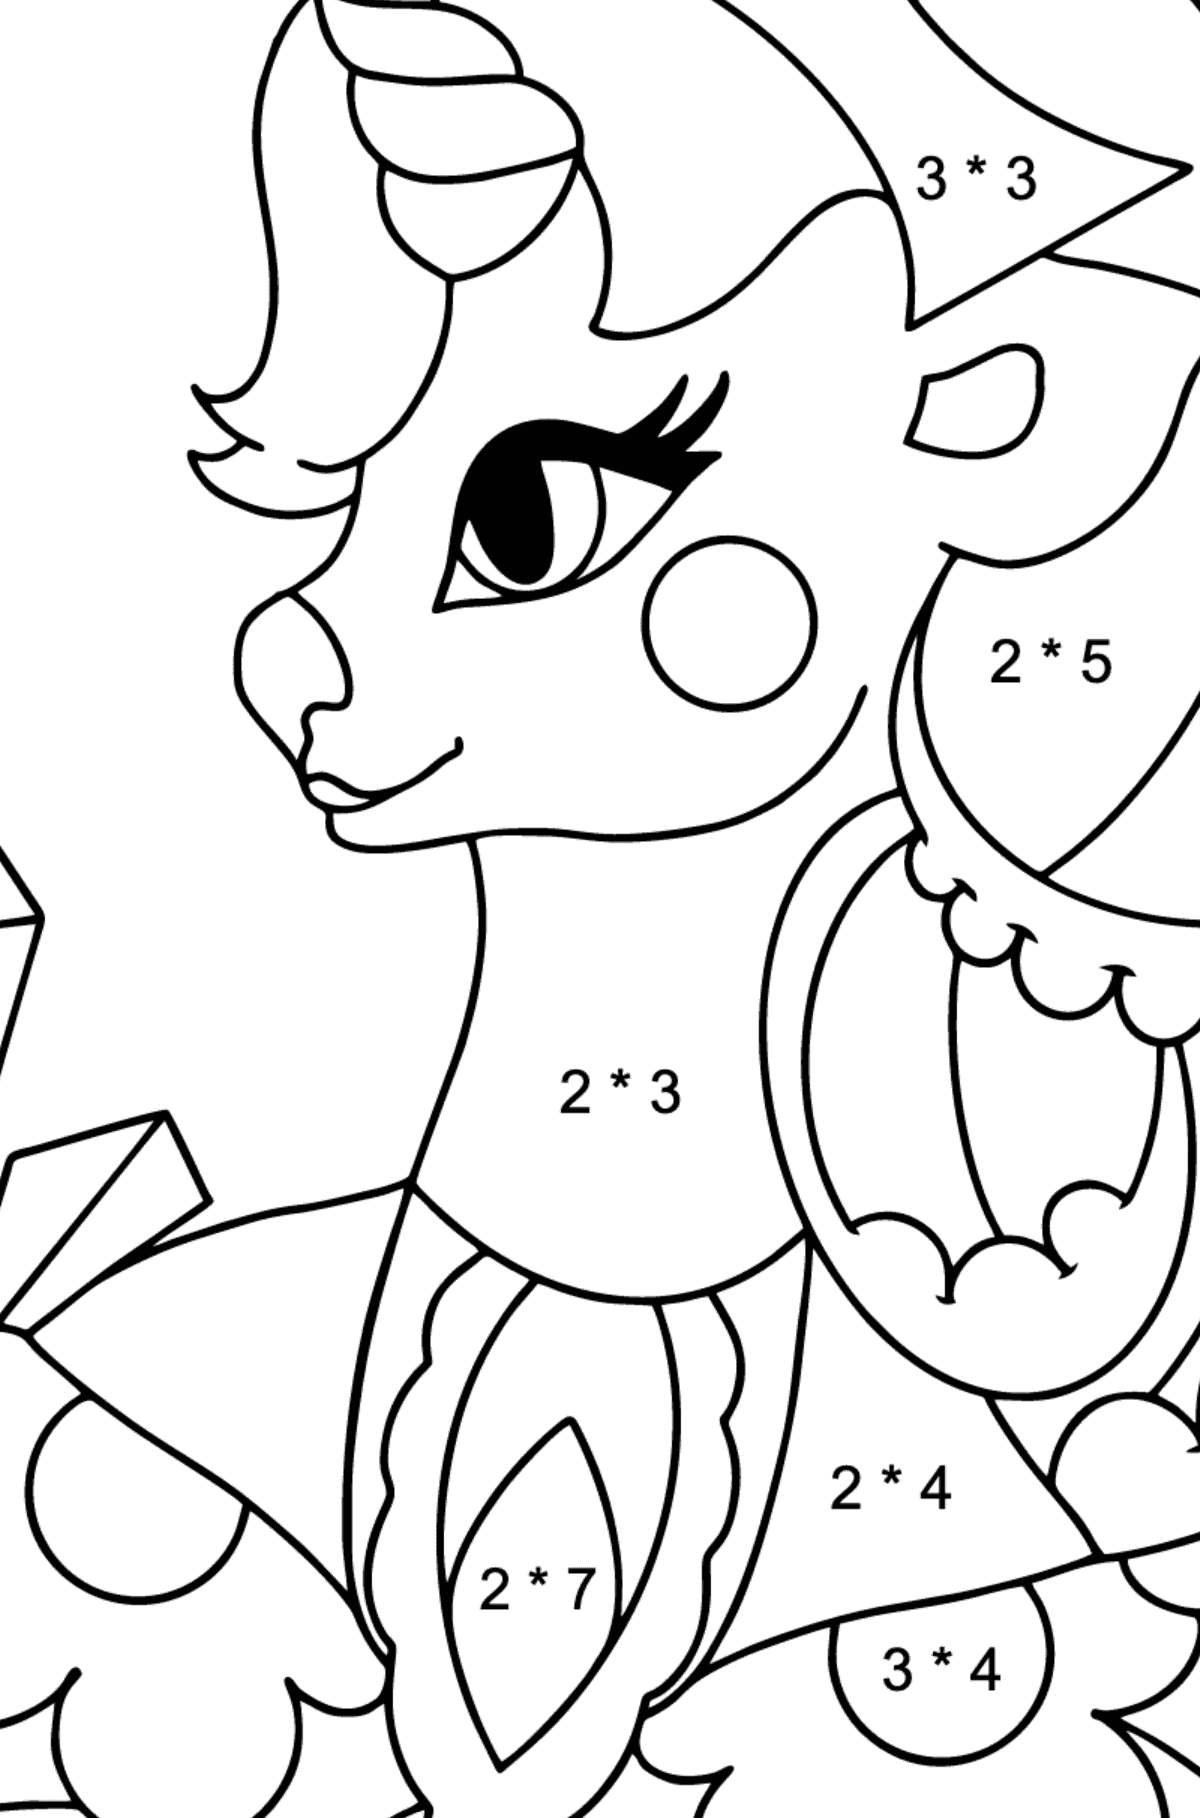 Simple Coloring Page - A Unicorn Queen for Children  - Color by Number Multiplication